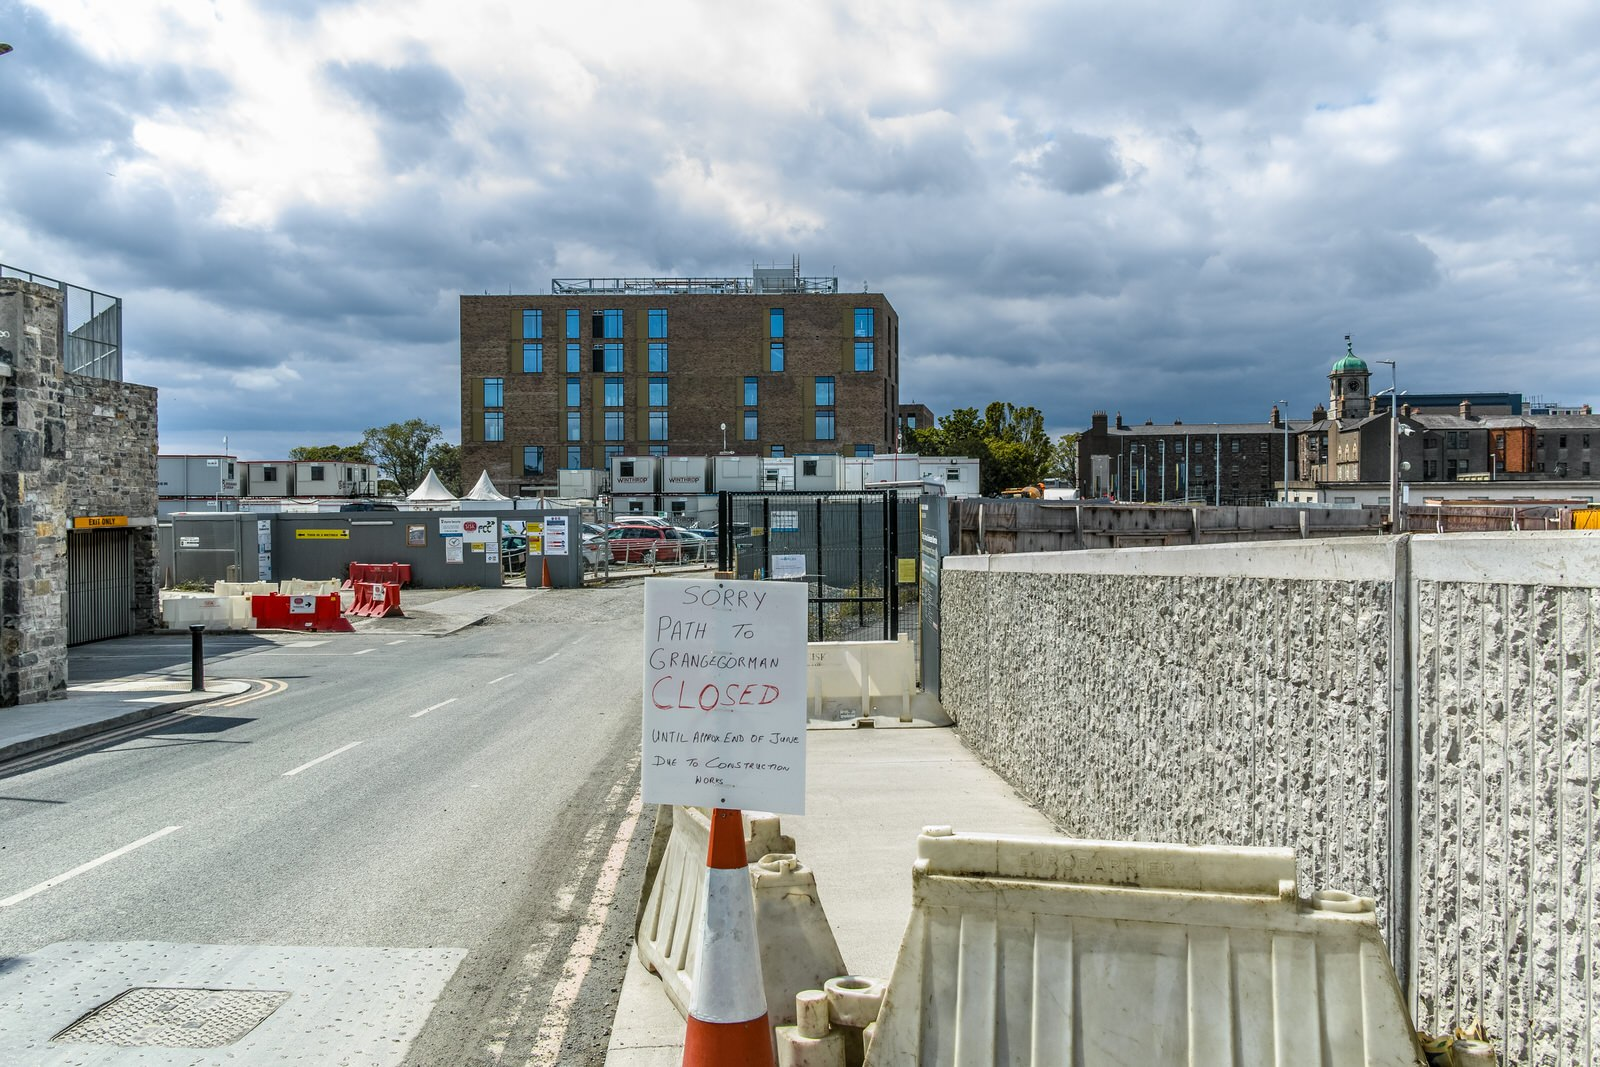 BROADSTONE-AREA-OF-DUBLIN-AND-NEARBY-3-JUNE-2020-TESTING-SIGMA-DP3-QUATTRO-DAY-1-162254-1